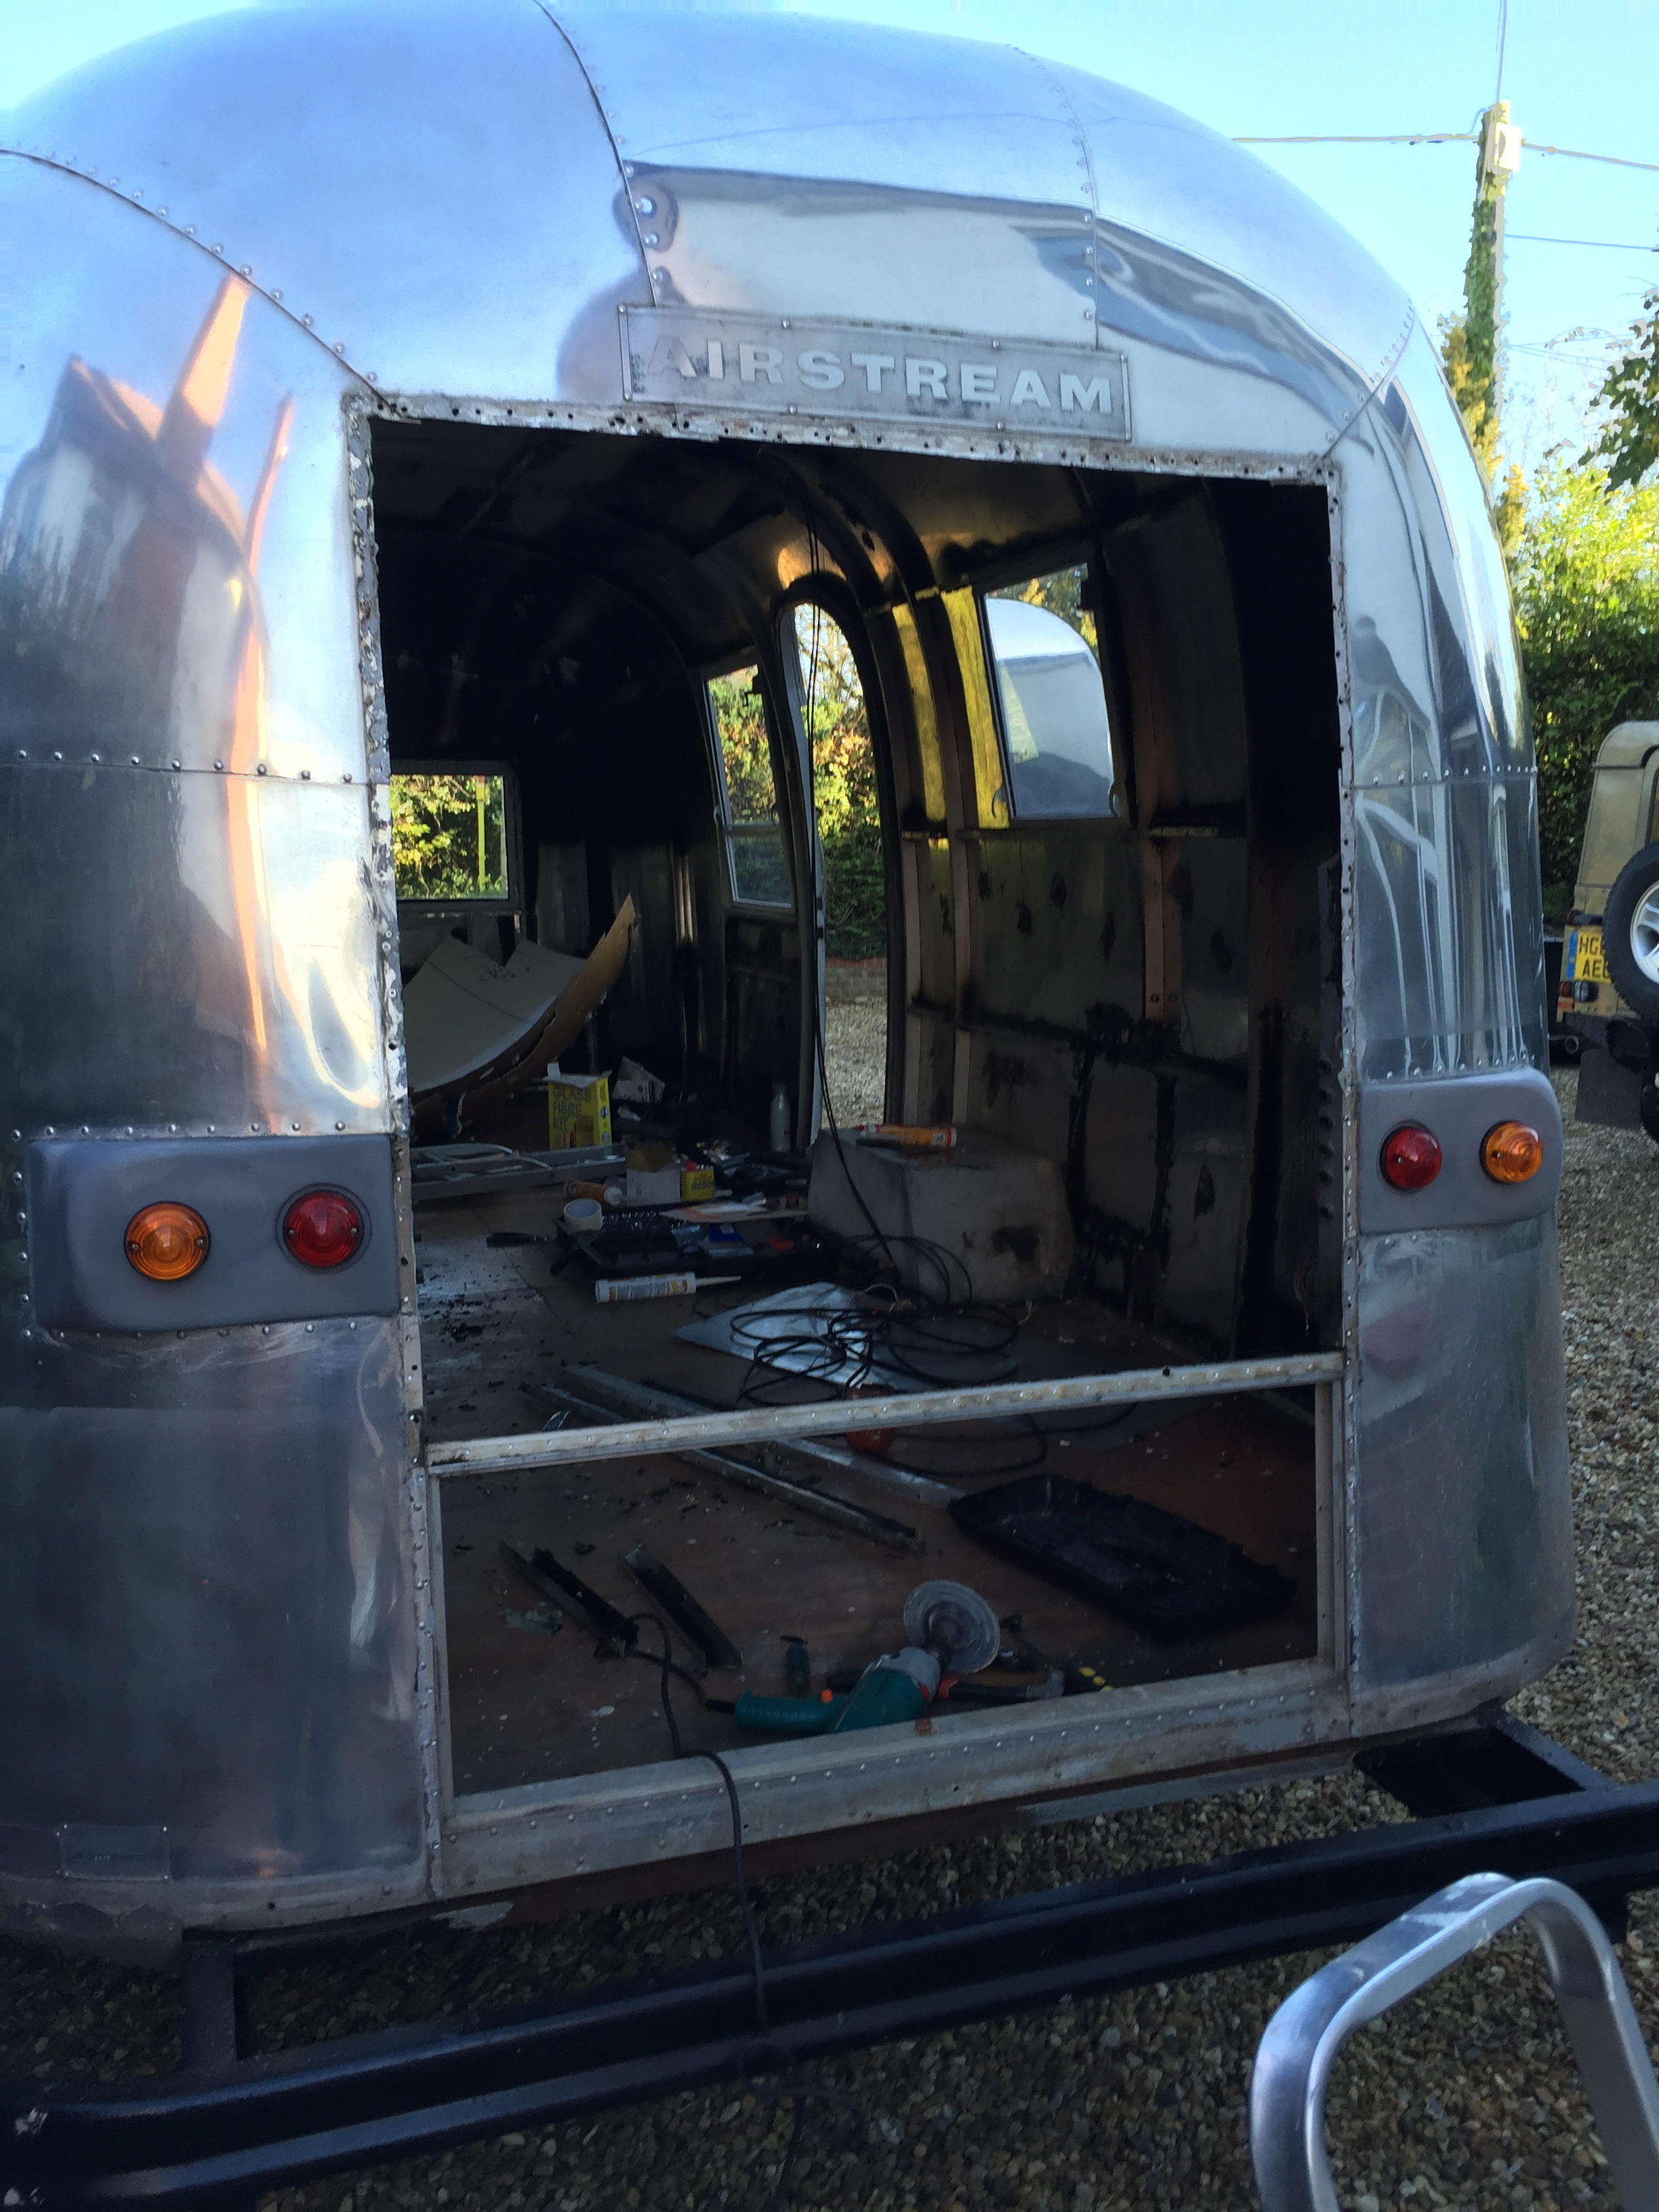 Airstream rear rebuild  | THE MAN OUTDOORS - A blog for